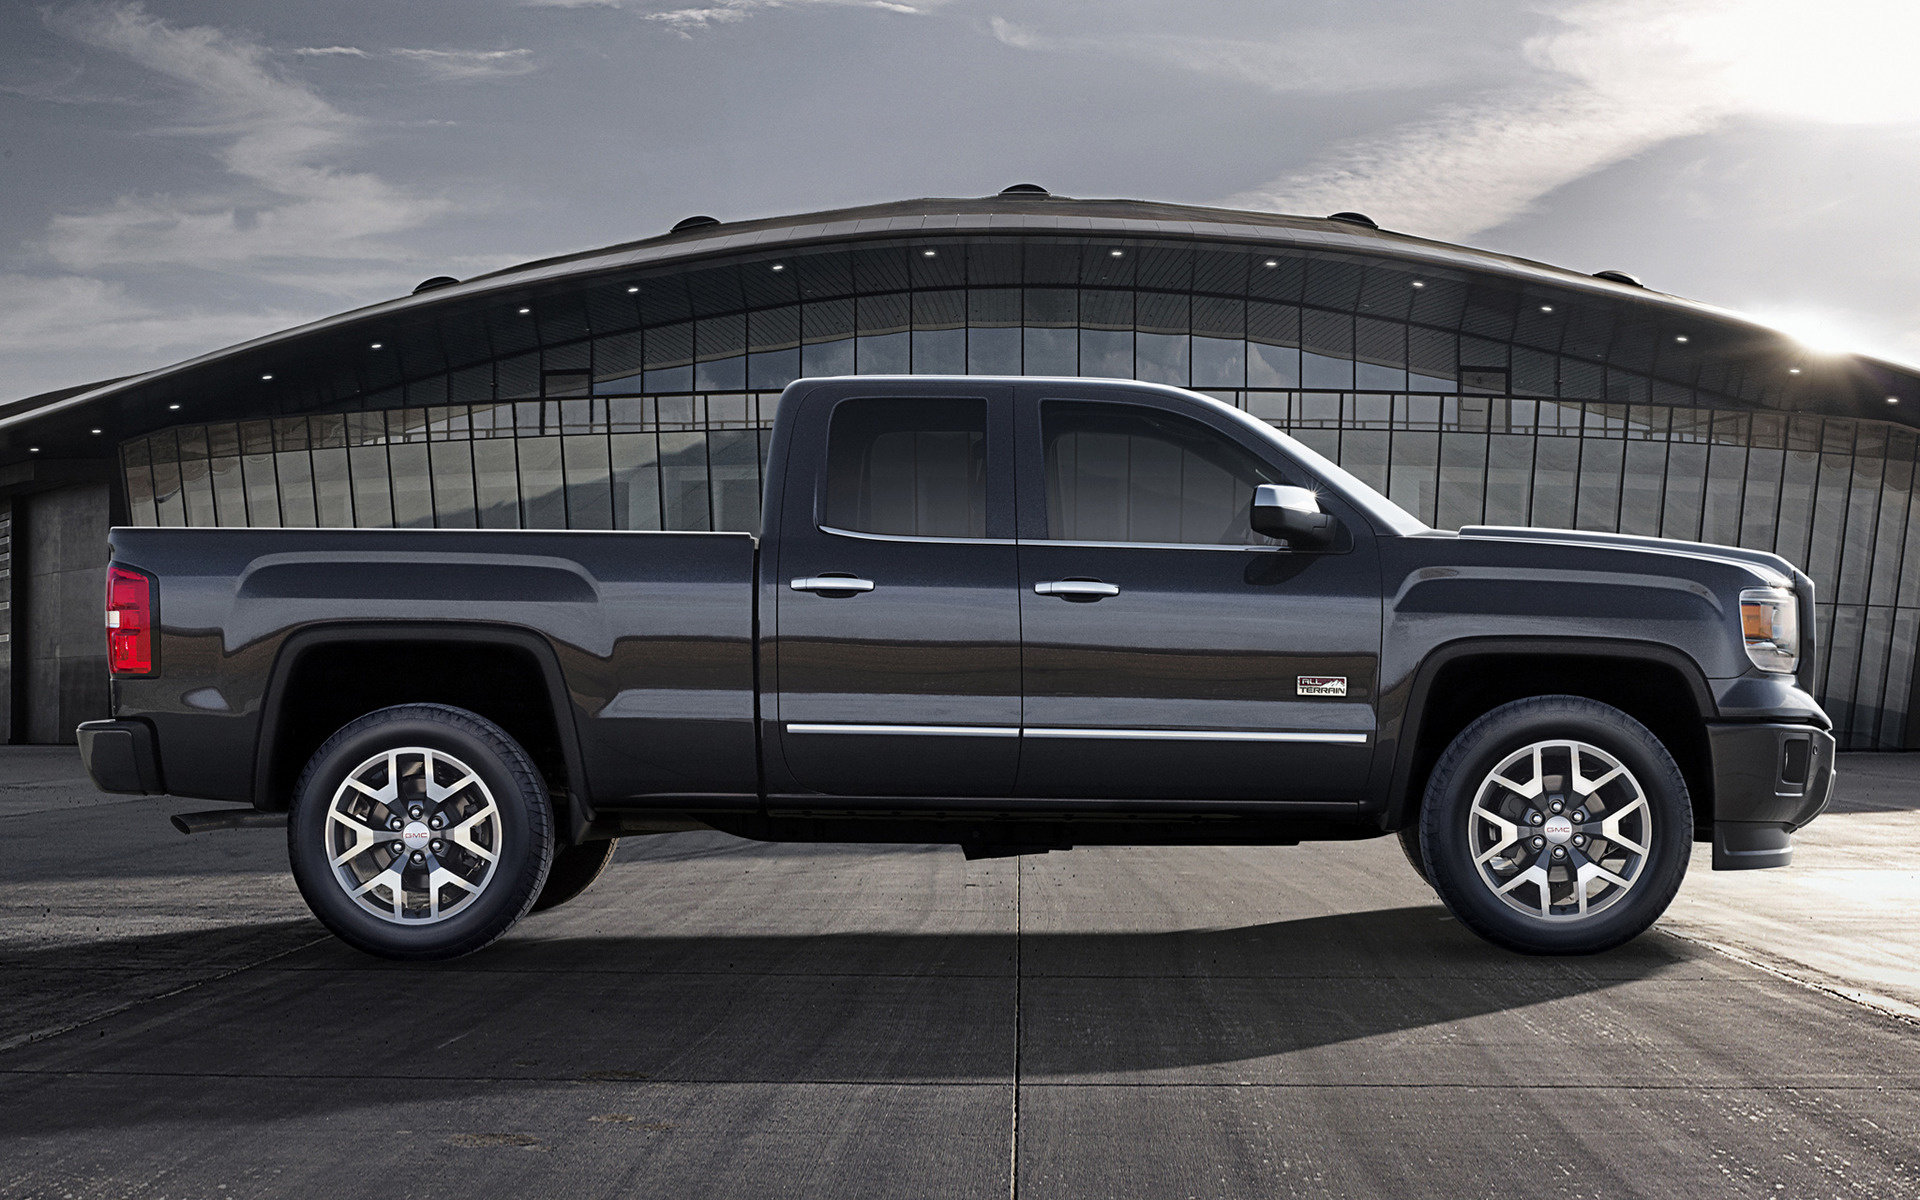 2016 Jeep Truck >> 2014 GMC Sierra All Terrain 1500 Double Cab - Wallpapers ...